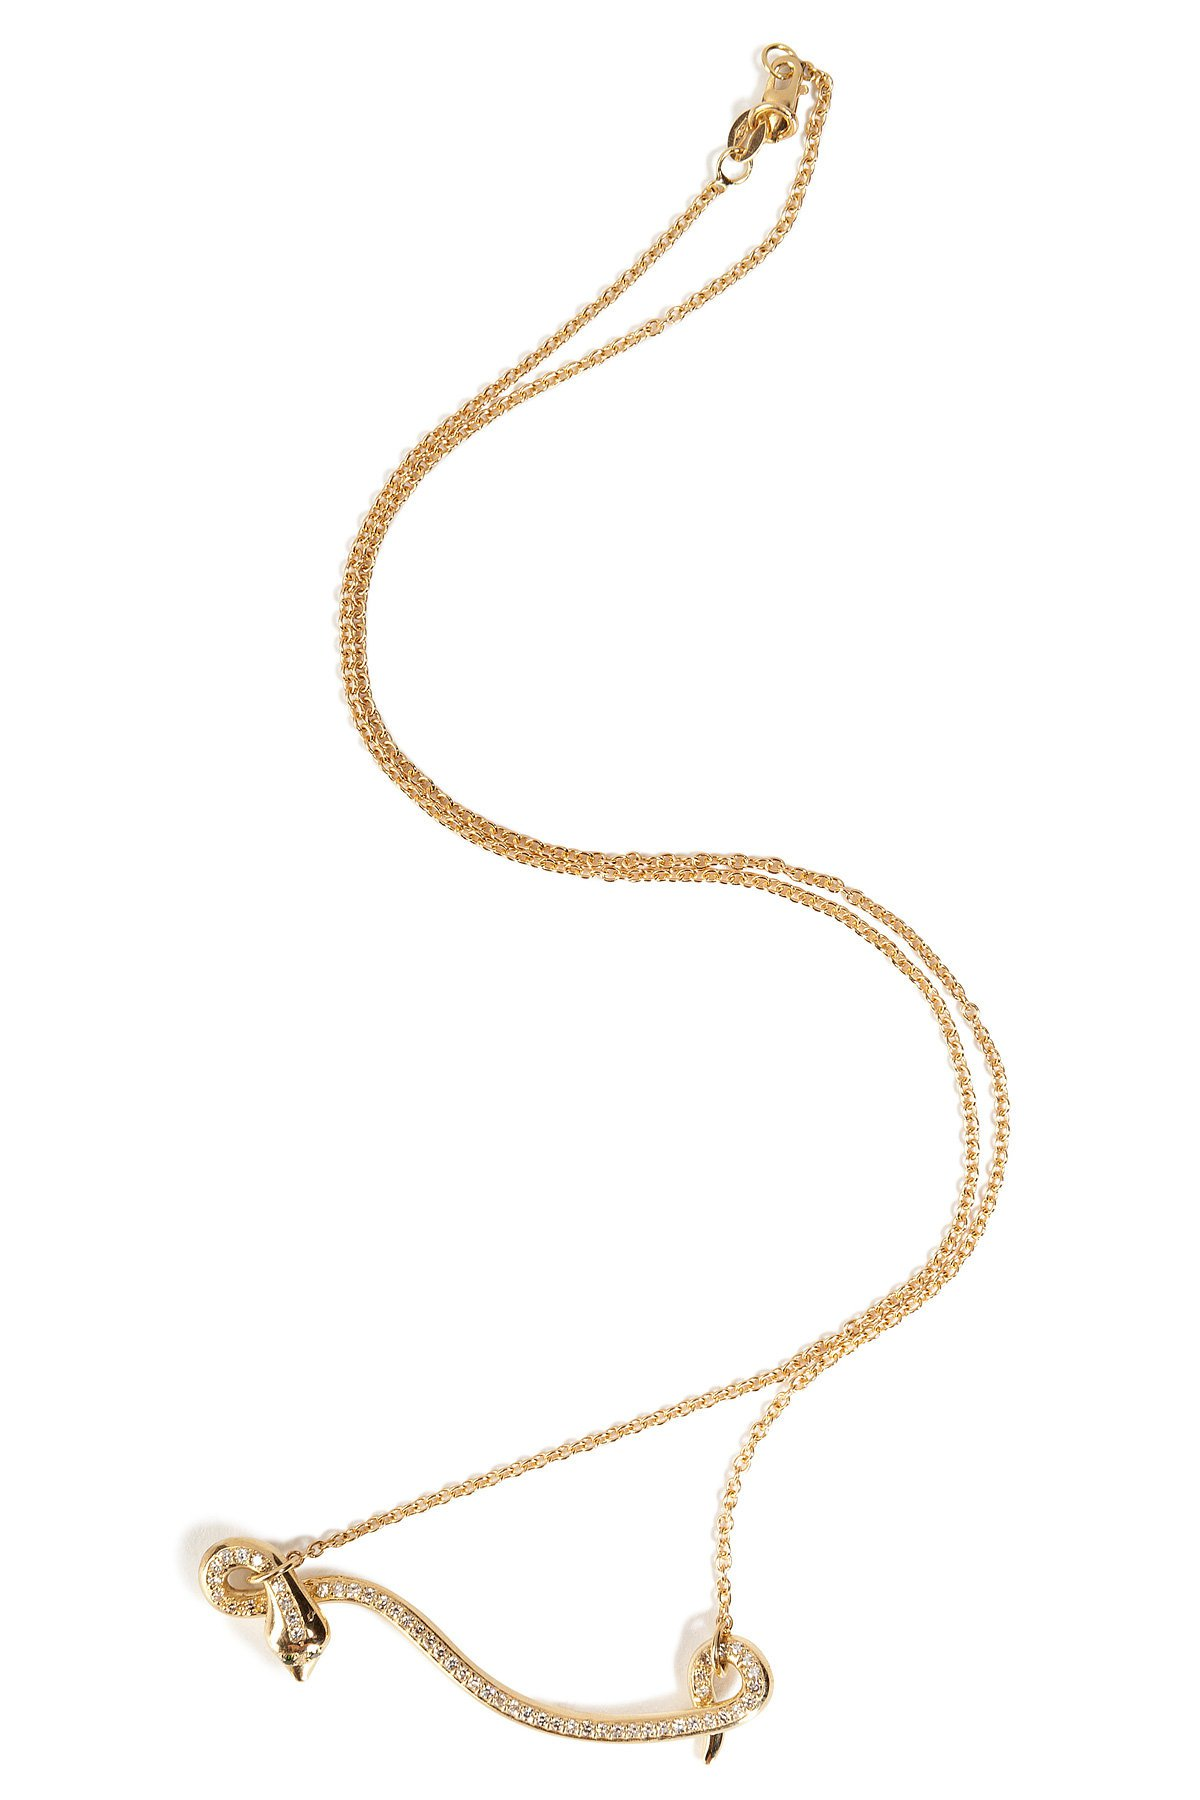 18kt Yellow Gold Flying Snake Necklace with Diamonds Gr. One Size